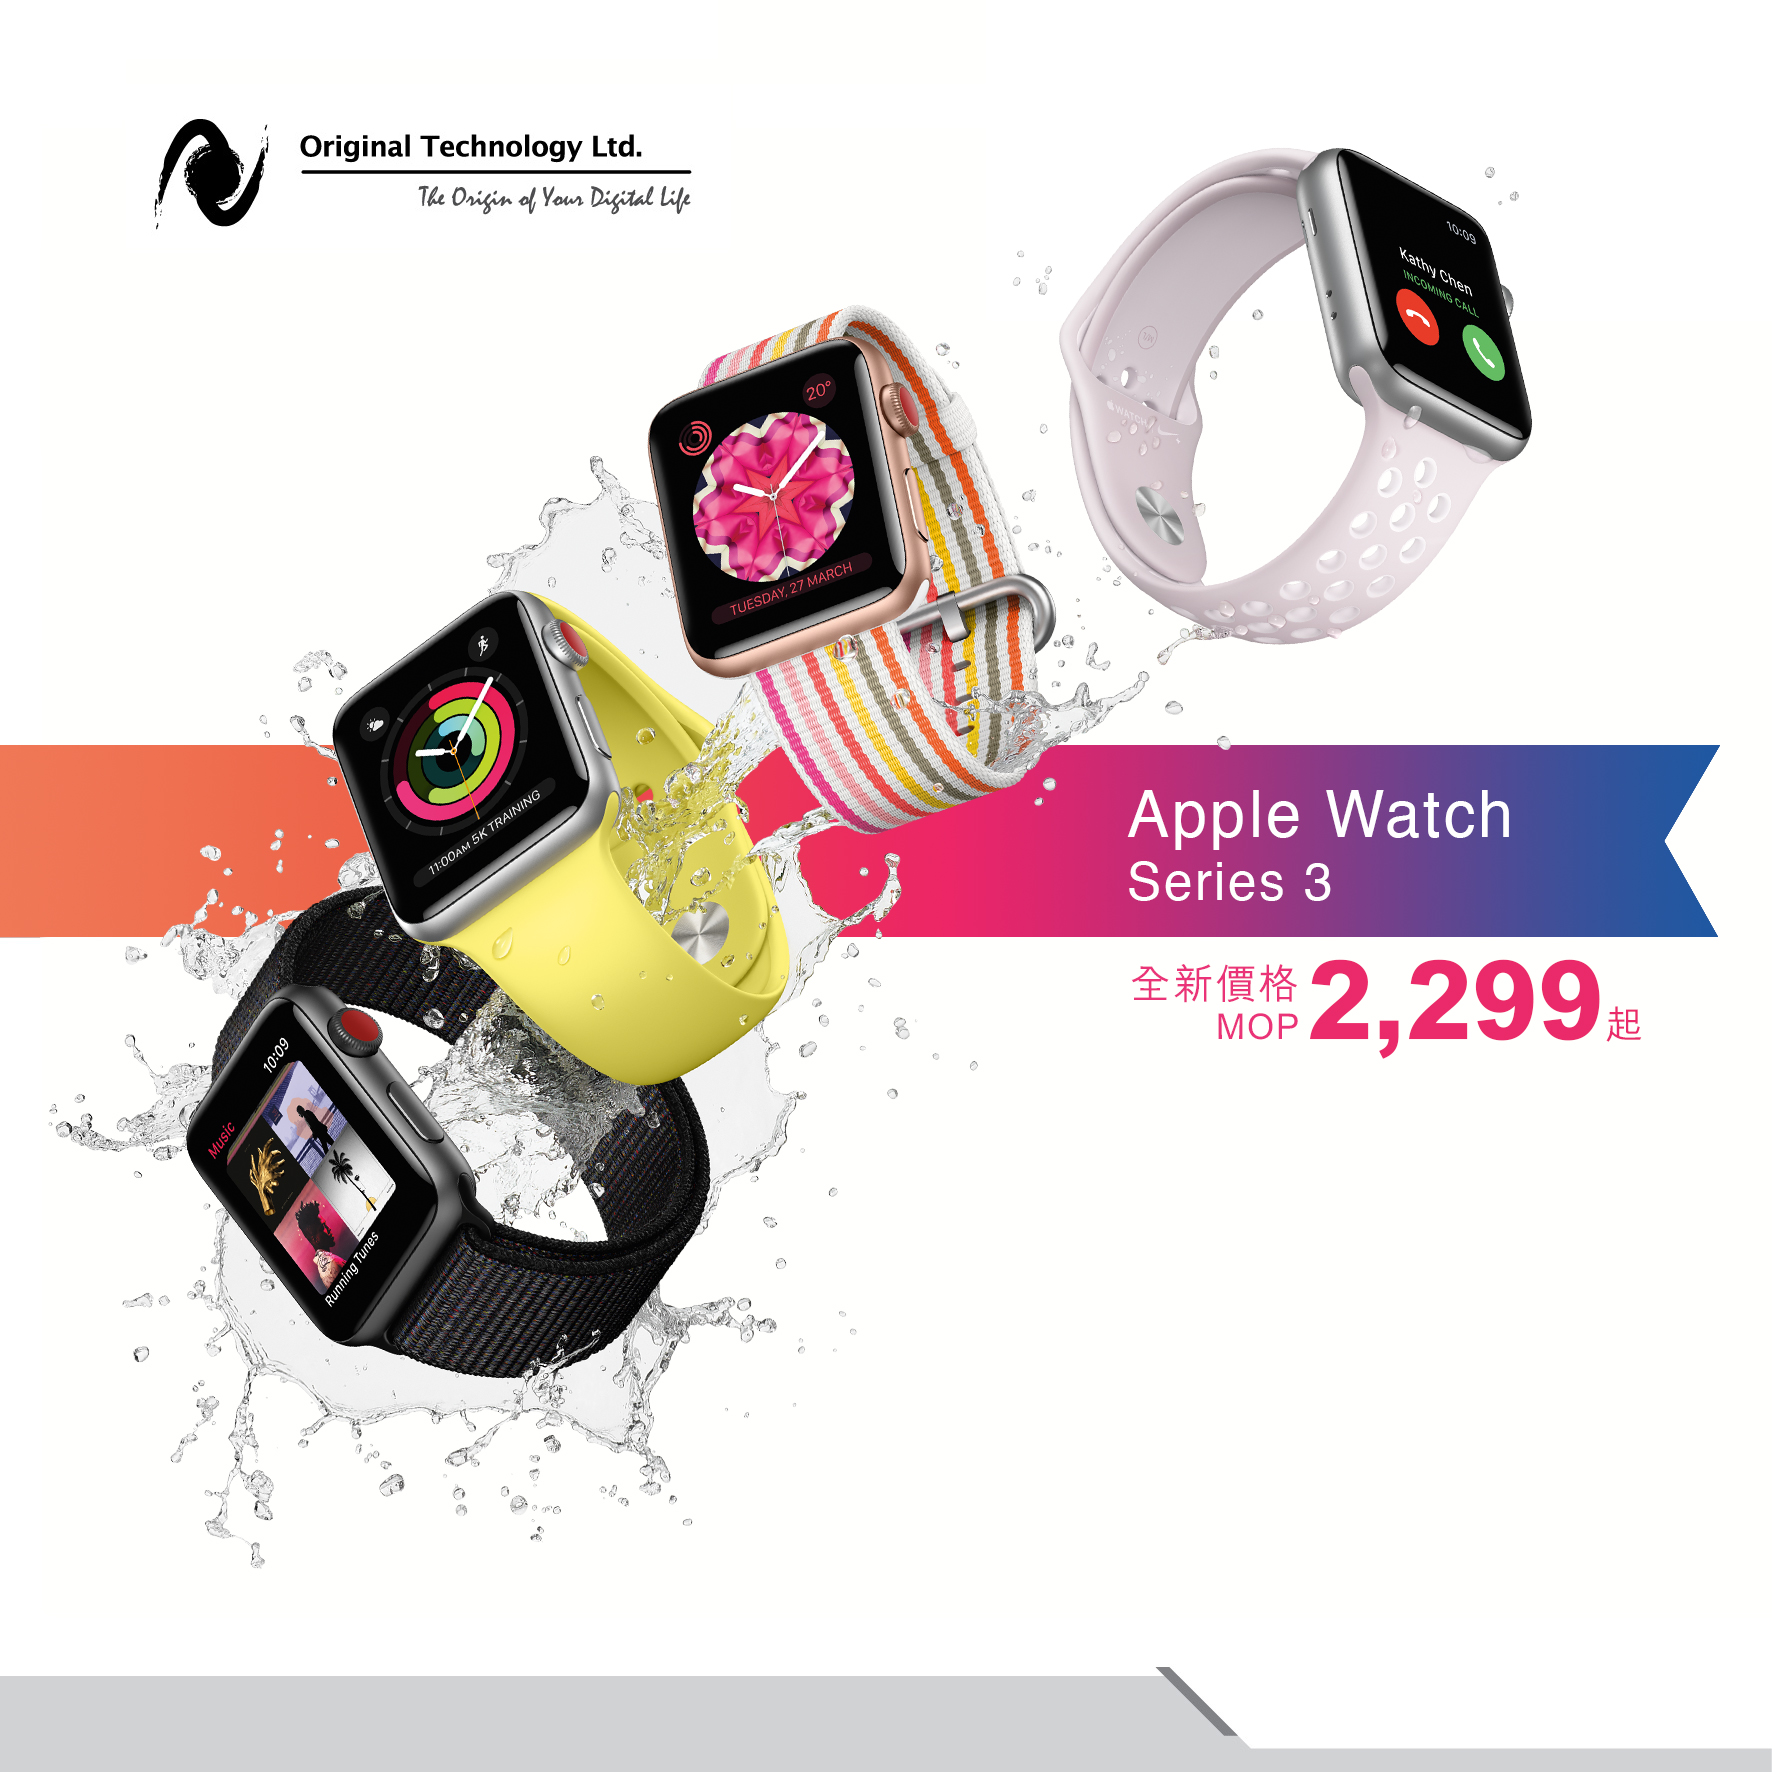 PR02_AppleWatchS3_Sale_FB01-01.jpg